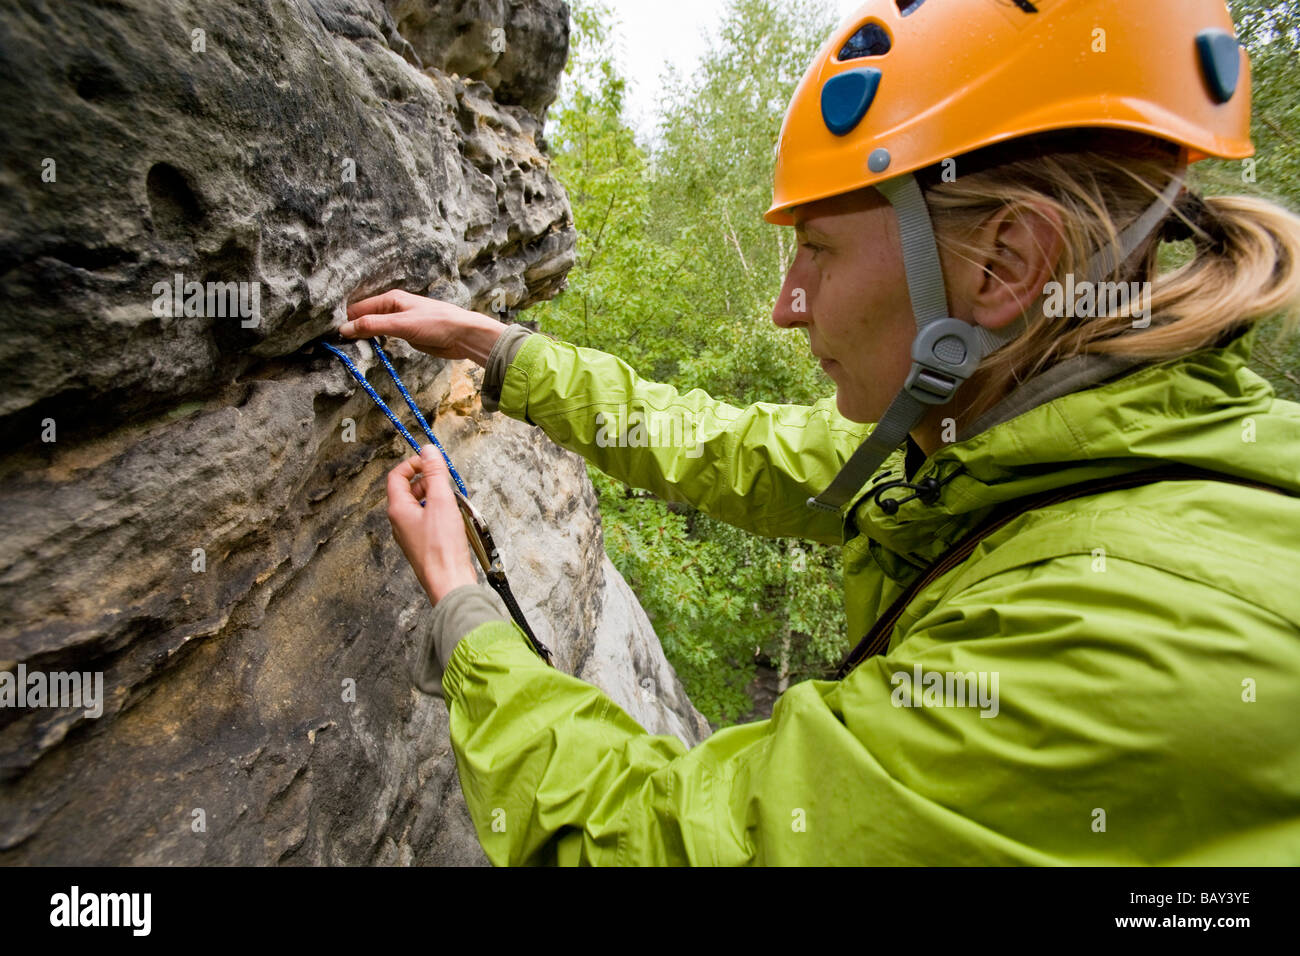 A young woman attaching a loop, sling, Alter Weg route, Wegelagerer Rocks, Bielatal, Elbe Sandstone Mountains, Saxon - Stock Image